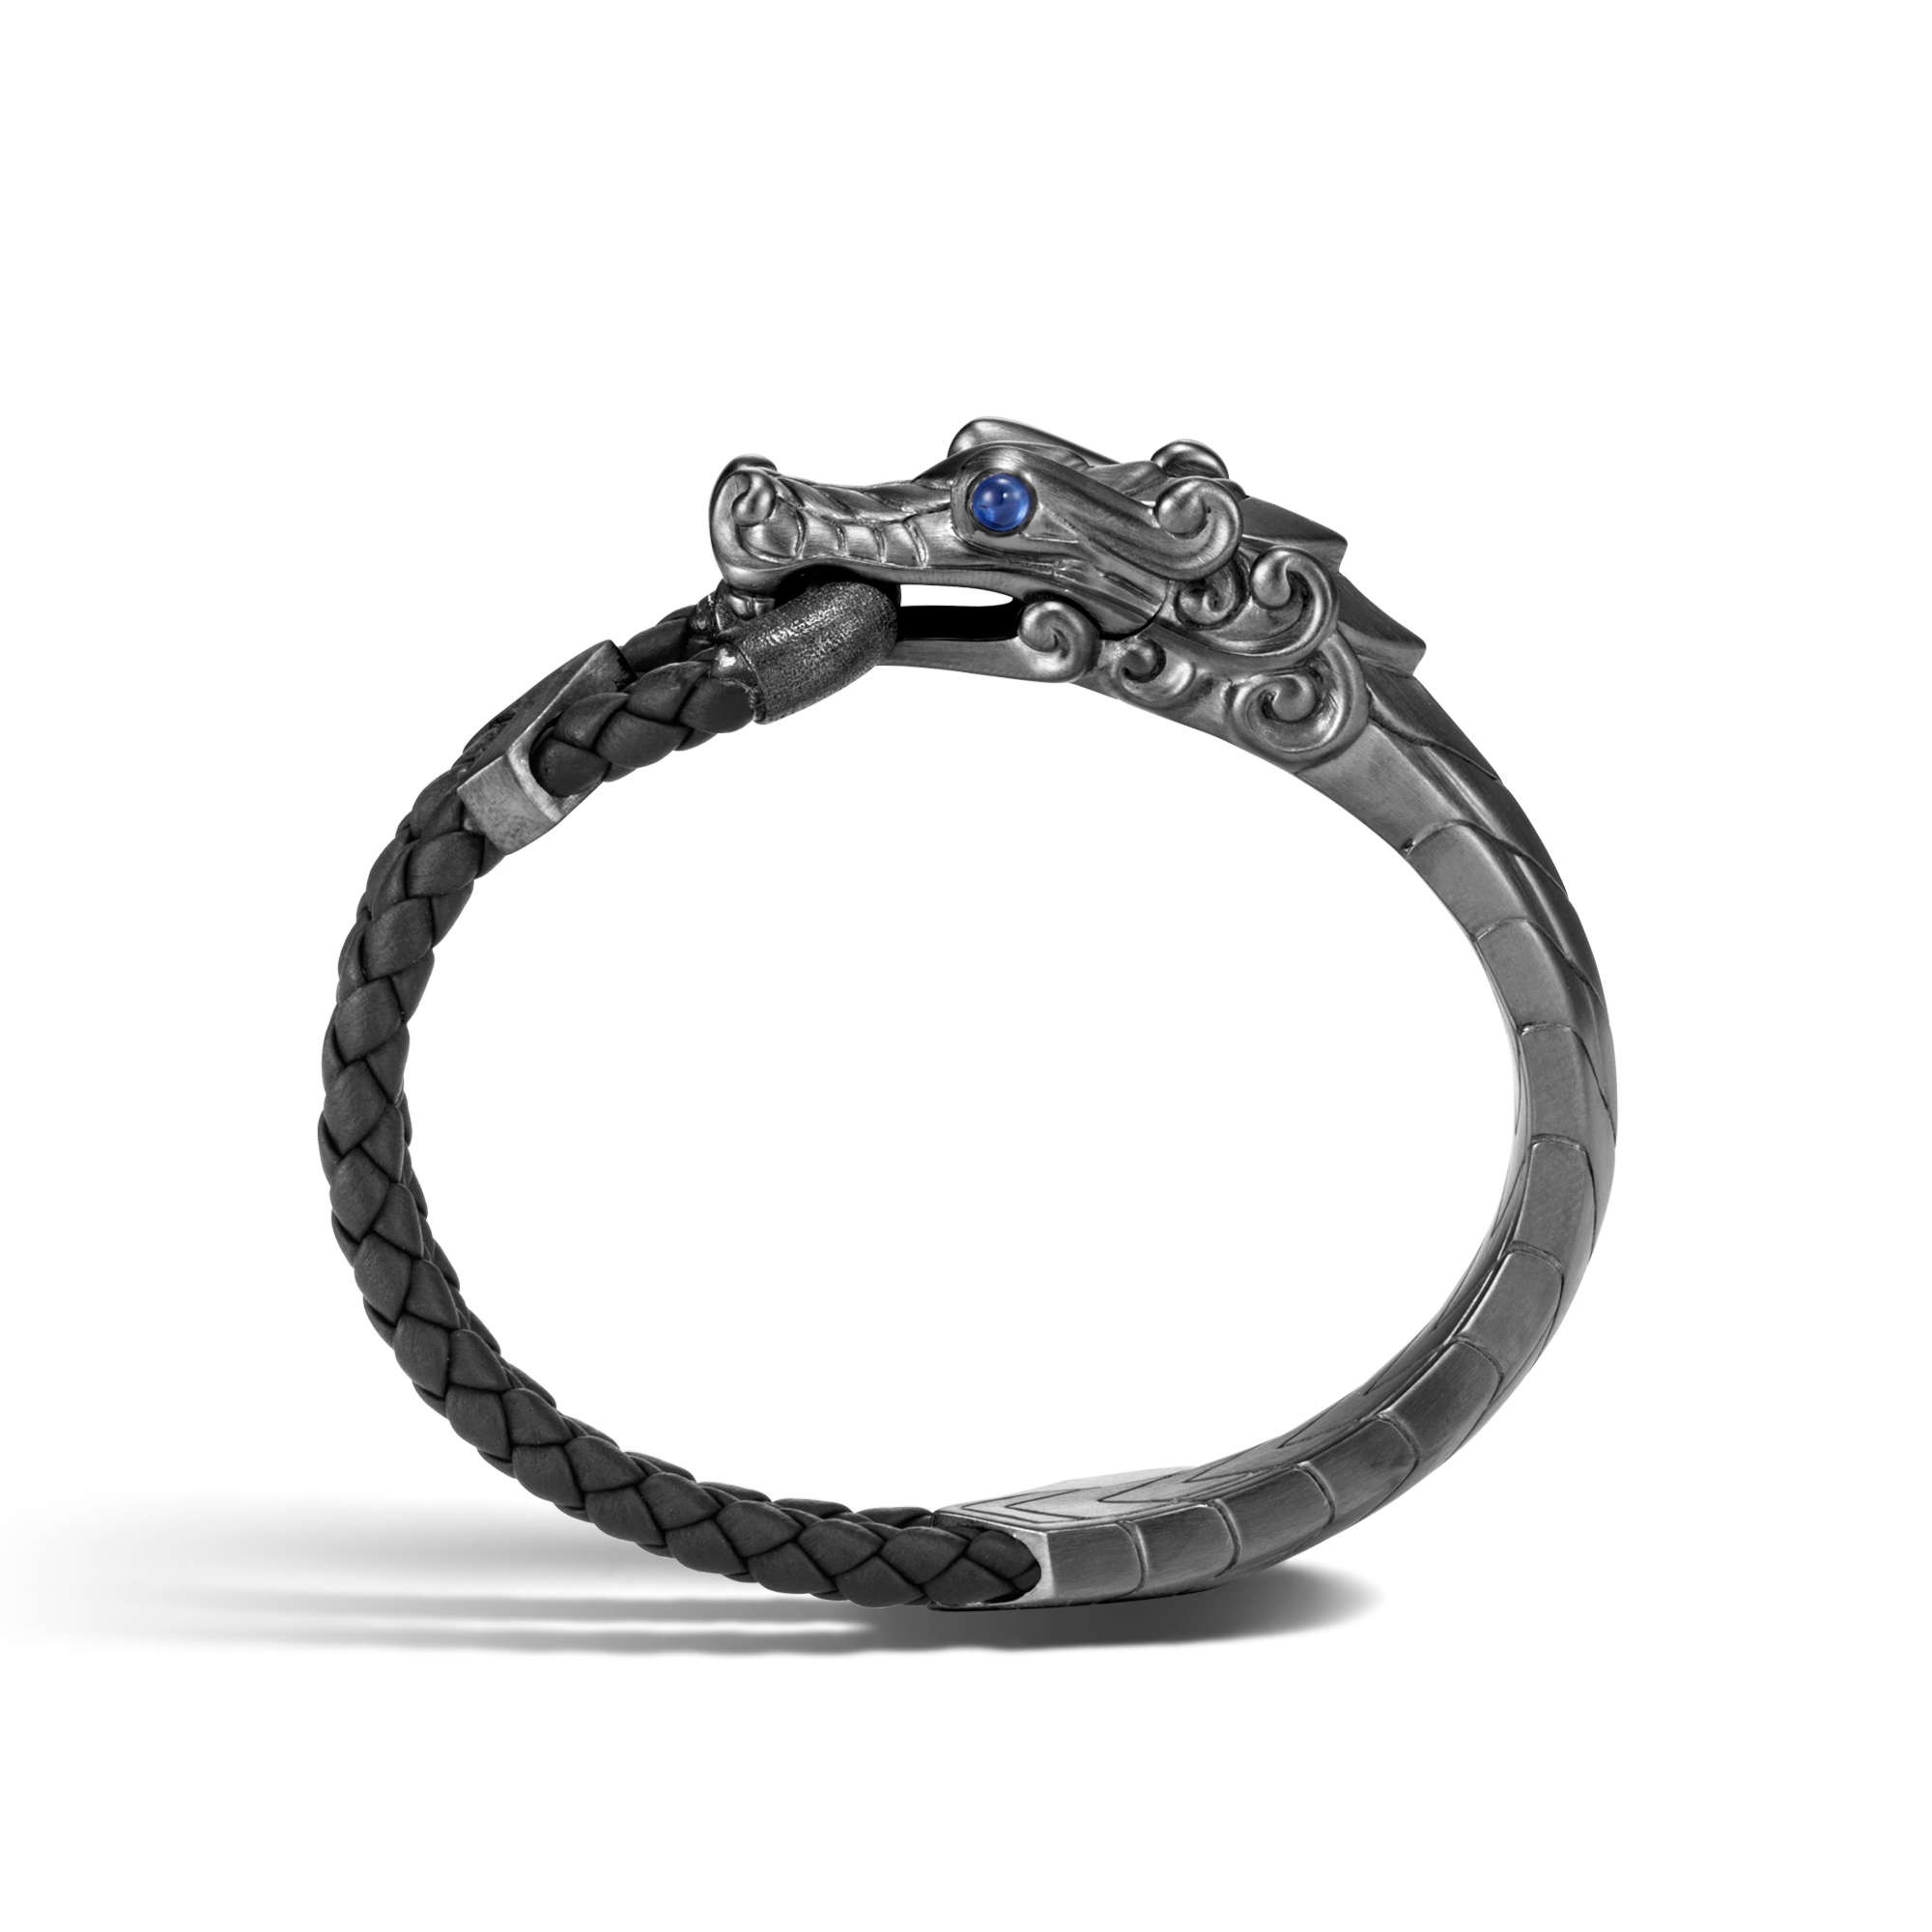 Legends Naga Bracelet in Blackened Silver with Leather, , large